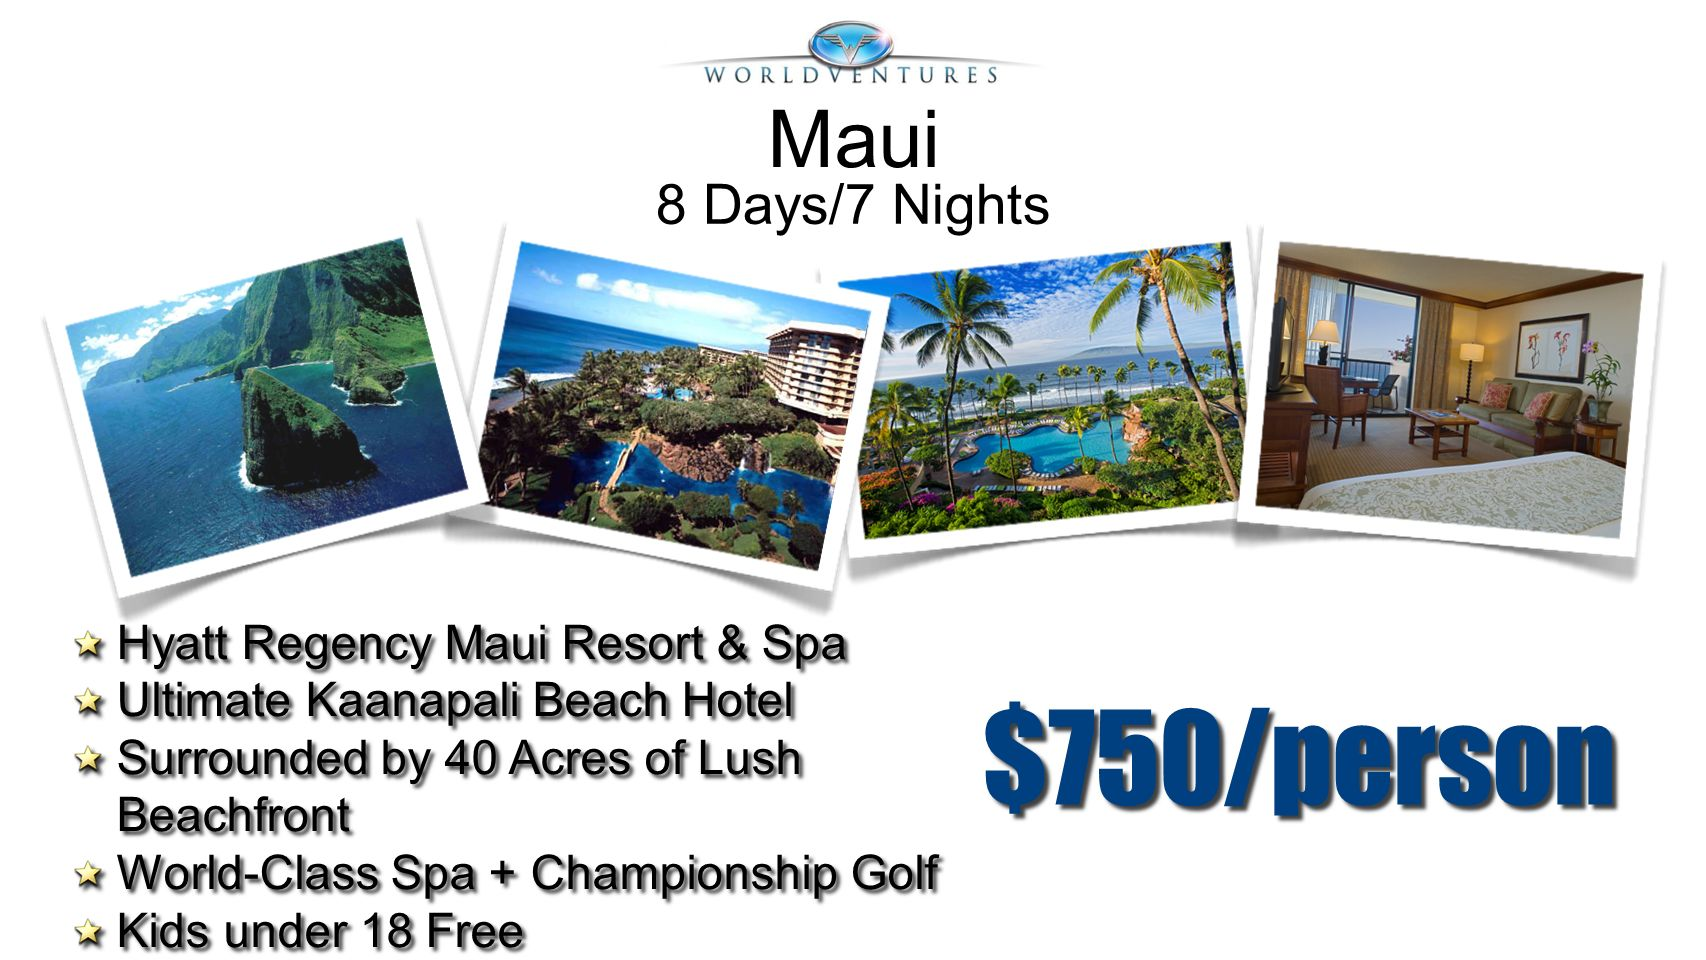 $750/person Maui 8 Days/7 Nights Hyatt Regency Maui Resort & Spa